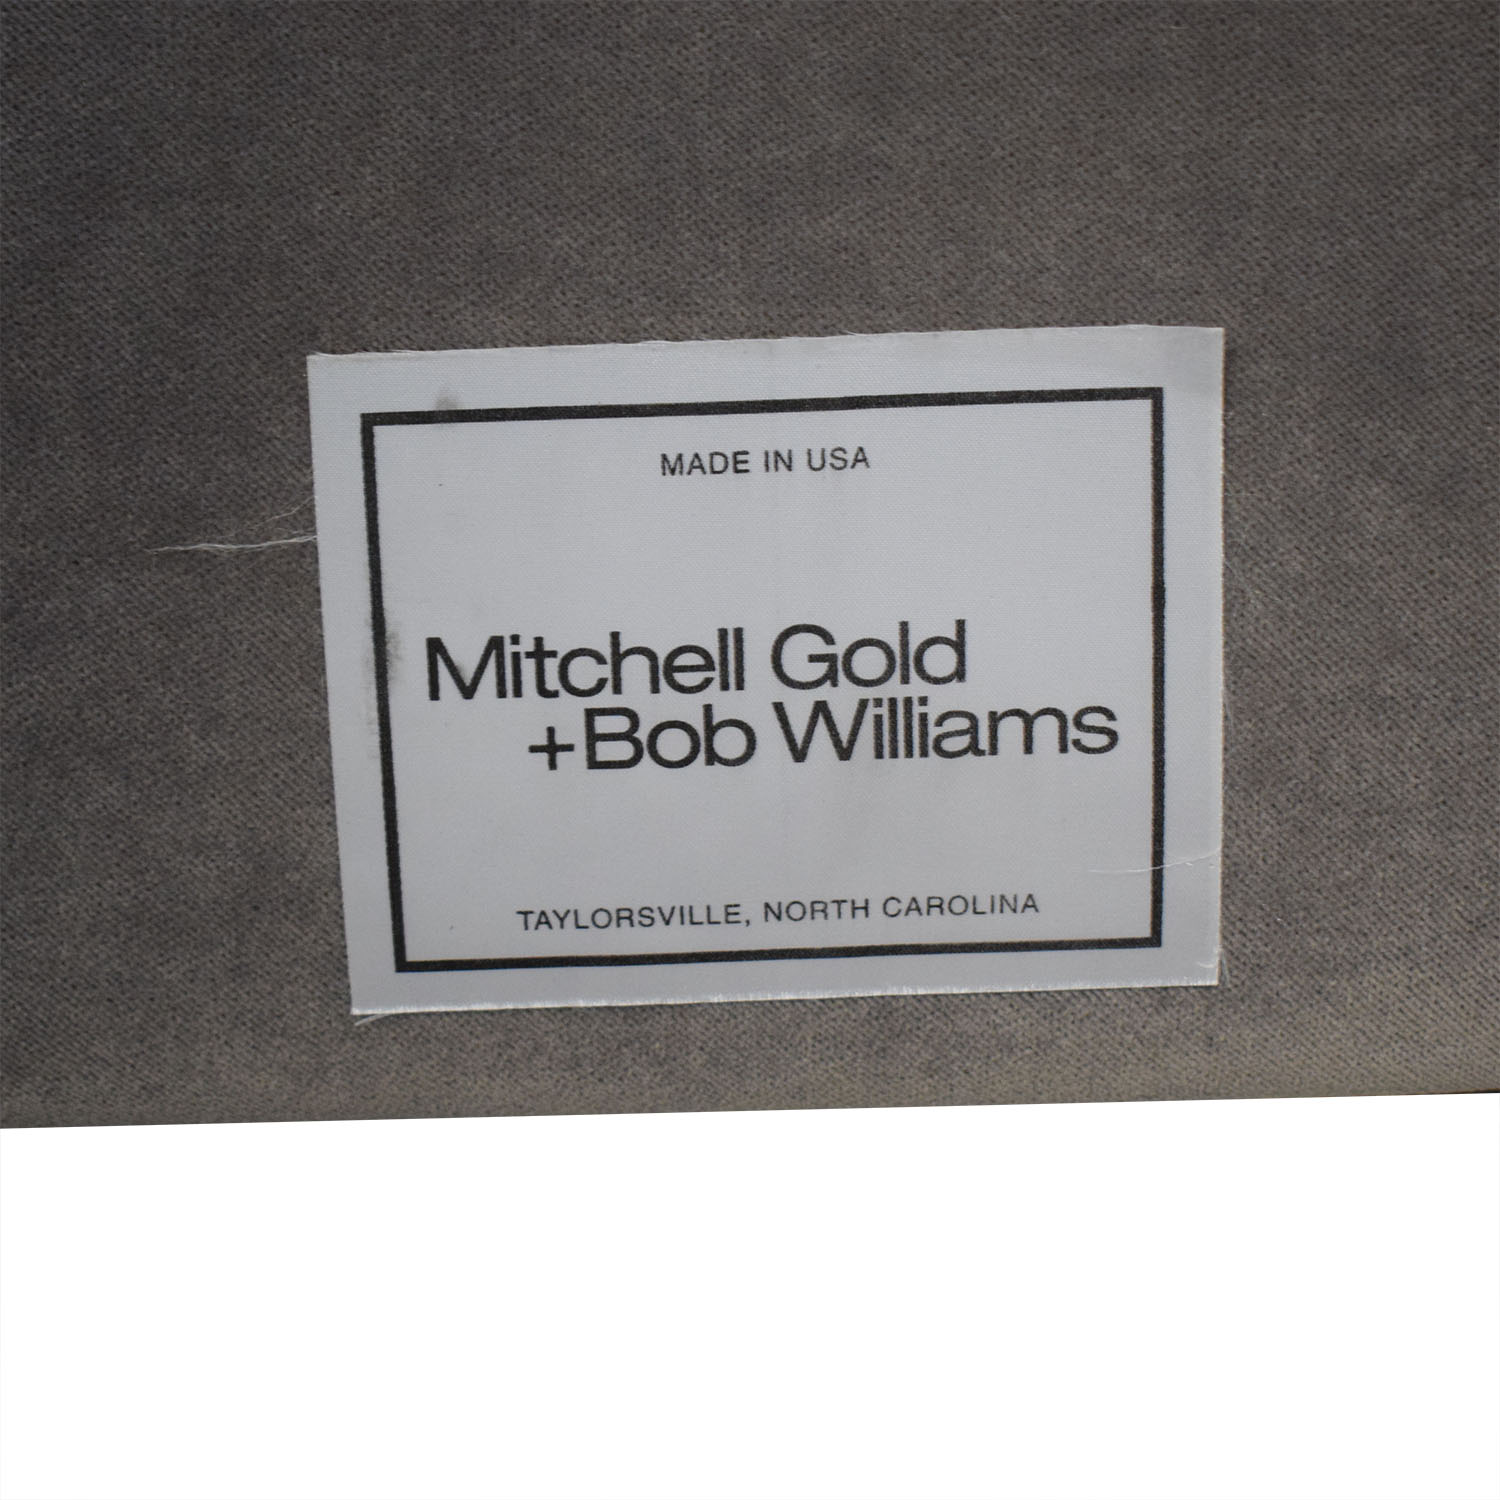 Mitchell Gold + Bob Williams Mitchell Gold + Bob Williams Upholstered King Bed Beds